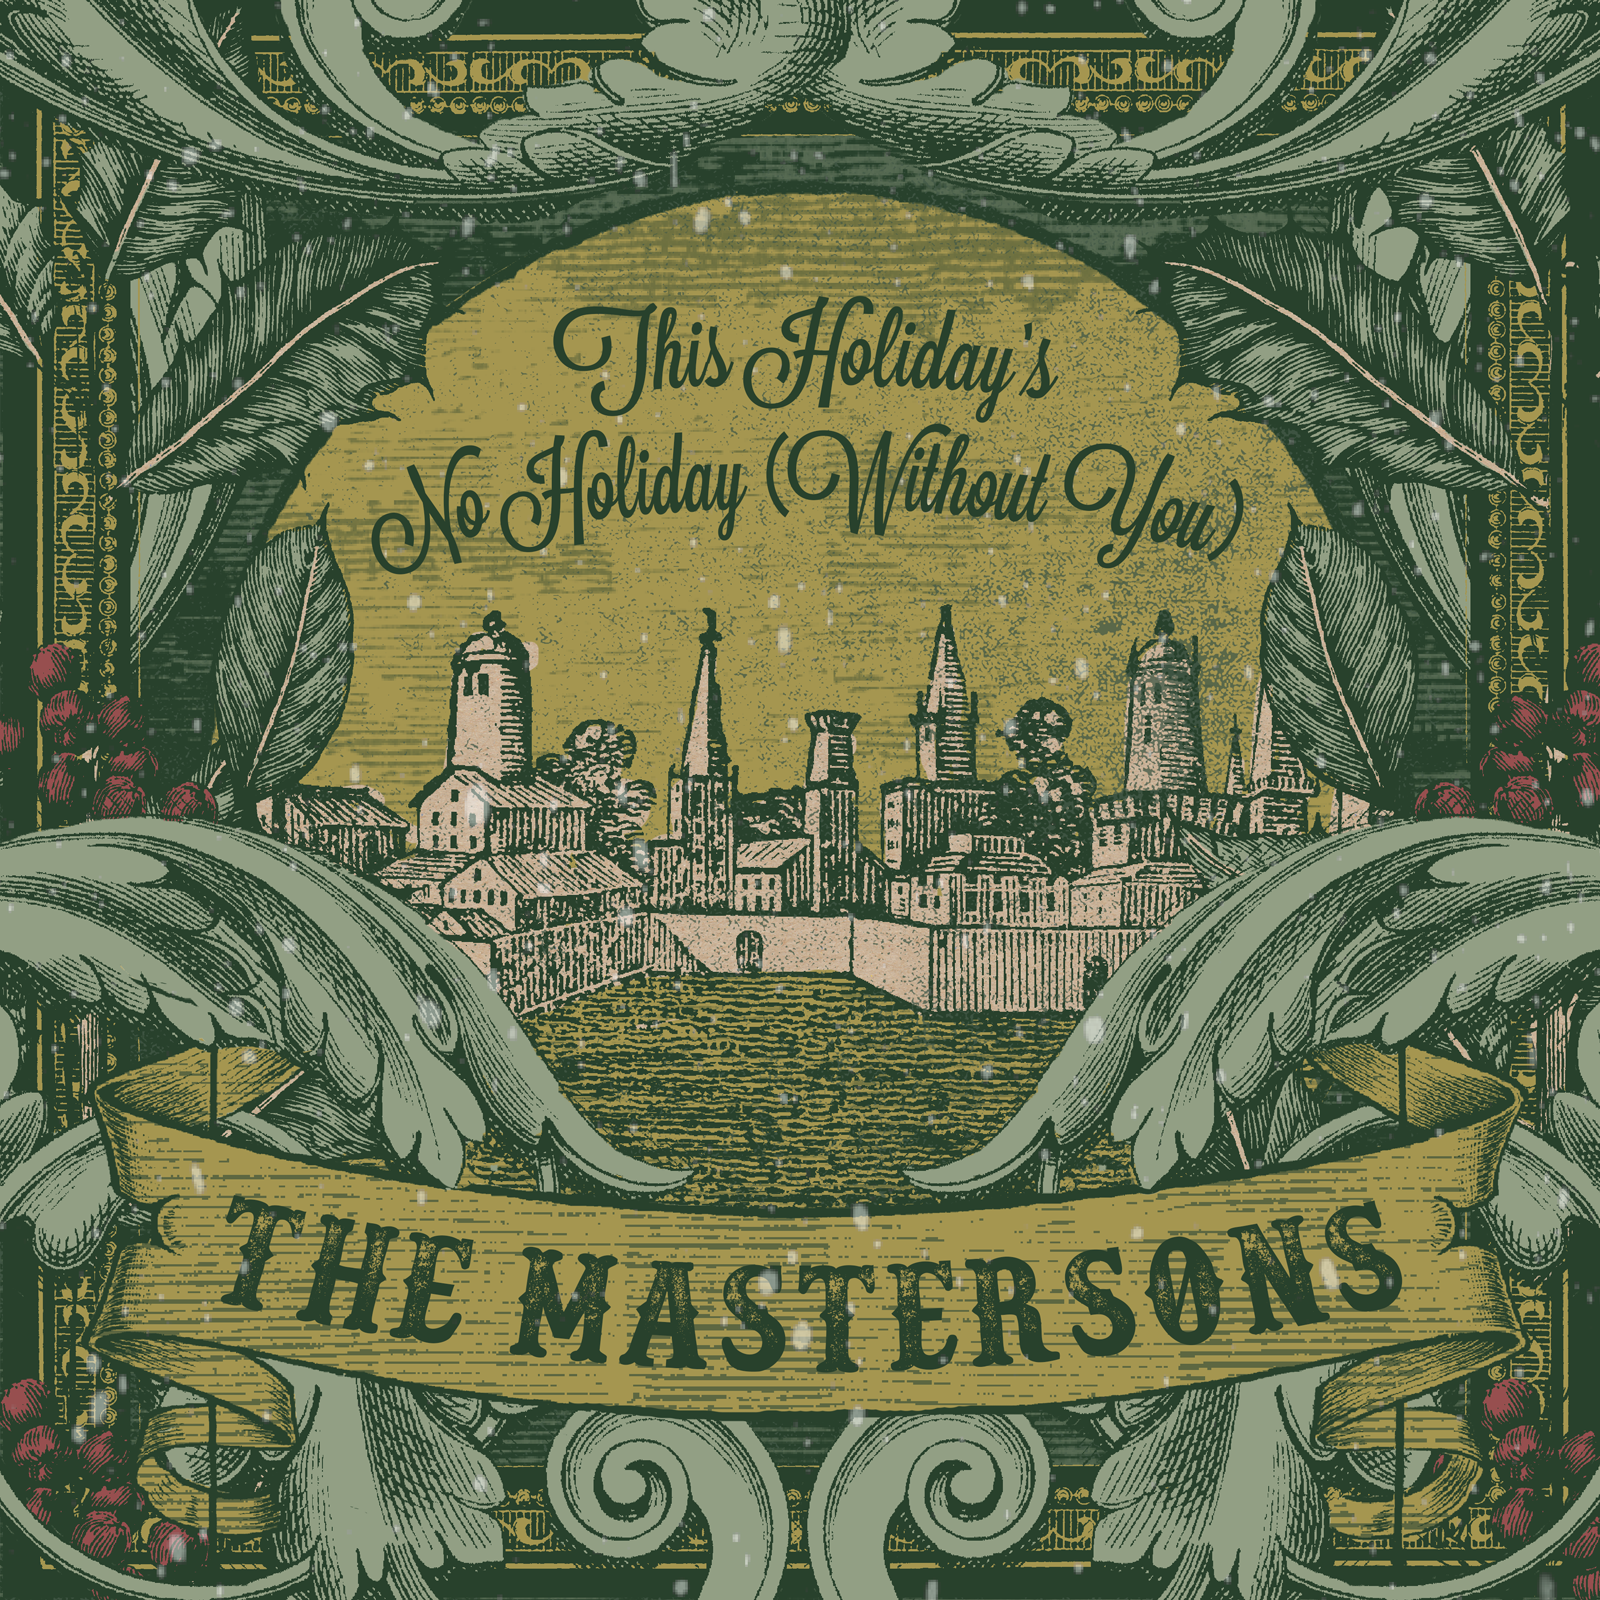 This Holiday's No Holiday (Without You) Digital Download - The Mastersons